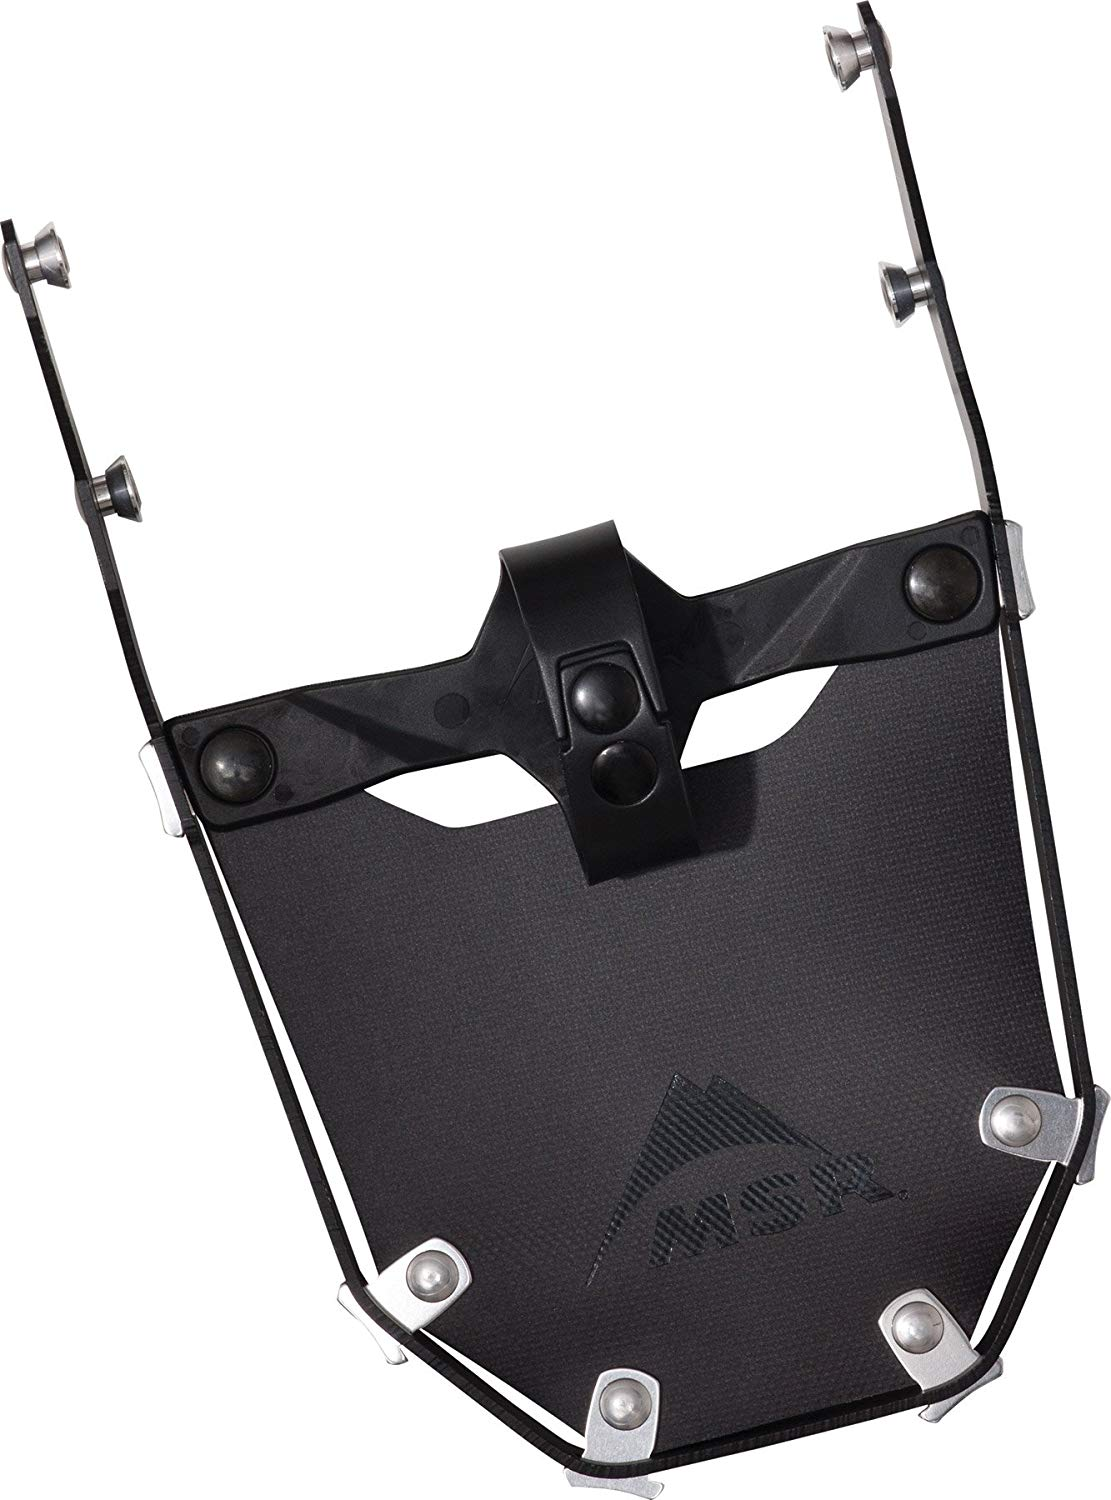 MSR Lightning Snowshoe Tail for Floatation